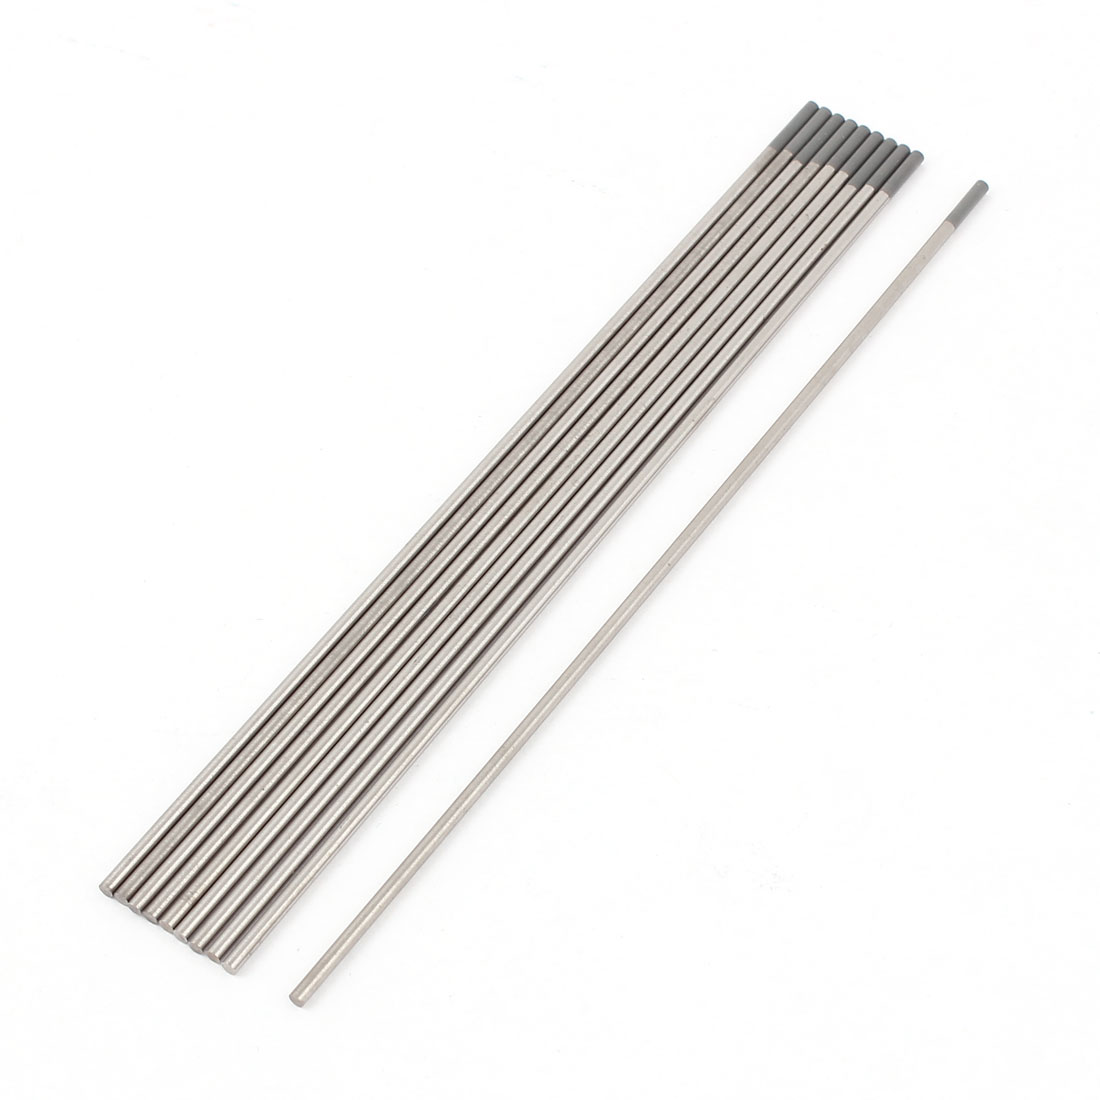 "10 Pcs TIG Welding 2% Ceriated Tungsten Electrodes WC20 2/25"" x 6"""